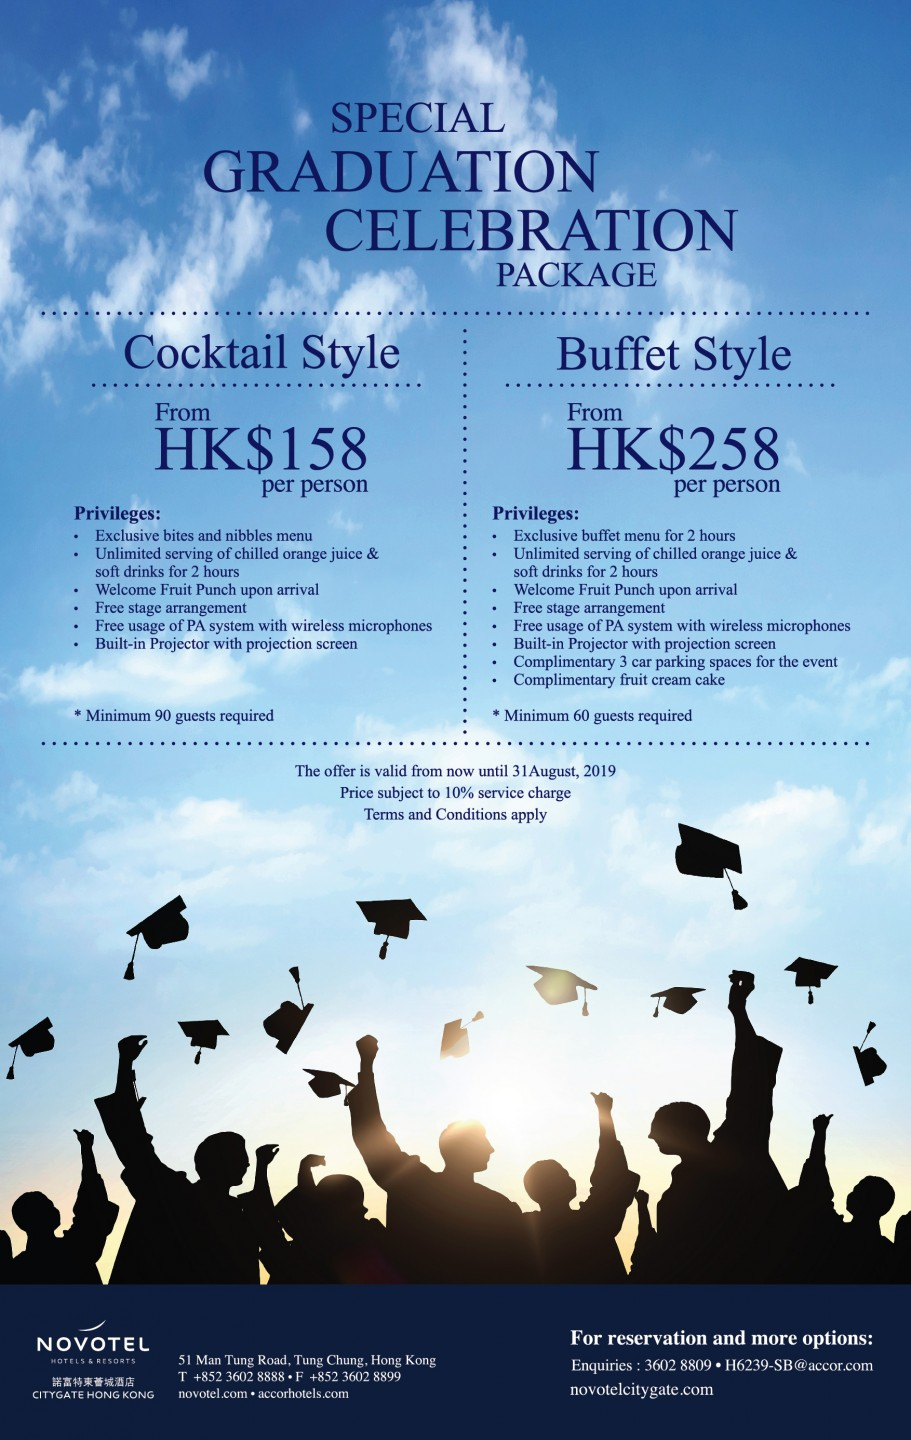 Special Graduation Celebration Package From HK$158 at Novotel Citygate Hong Kong in Tung Chung